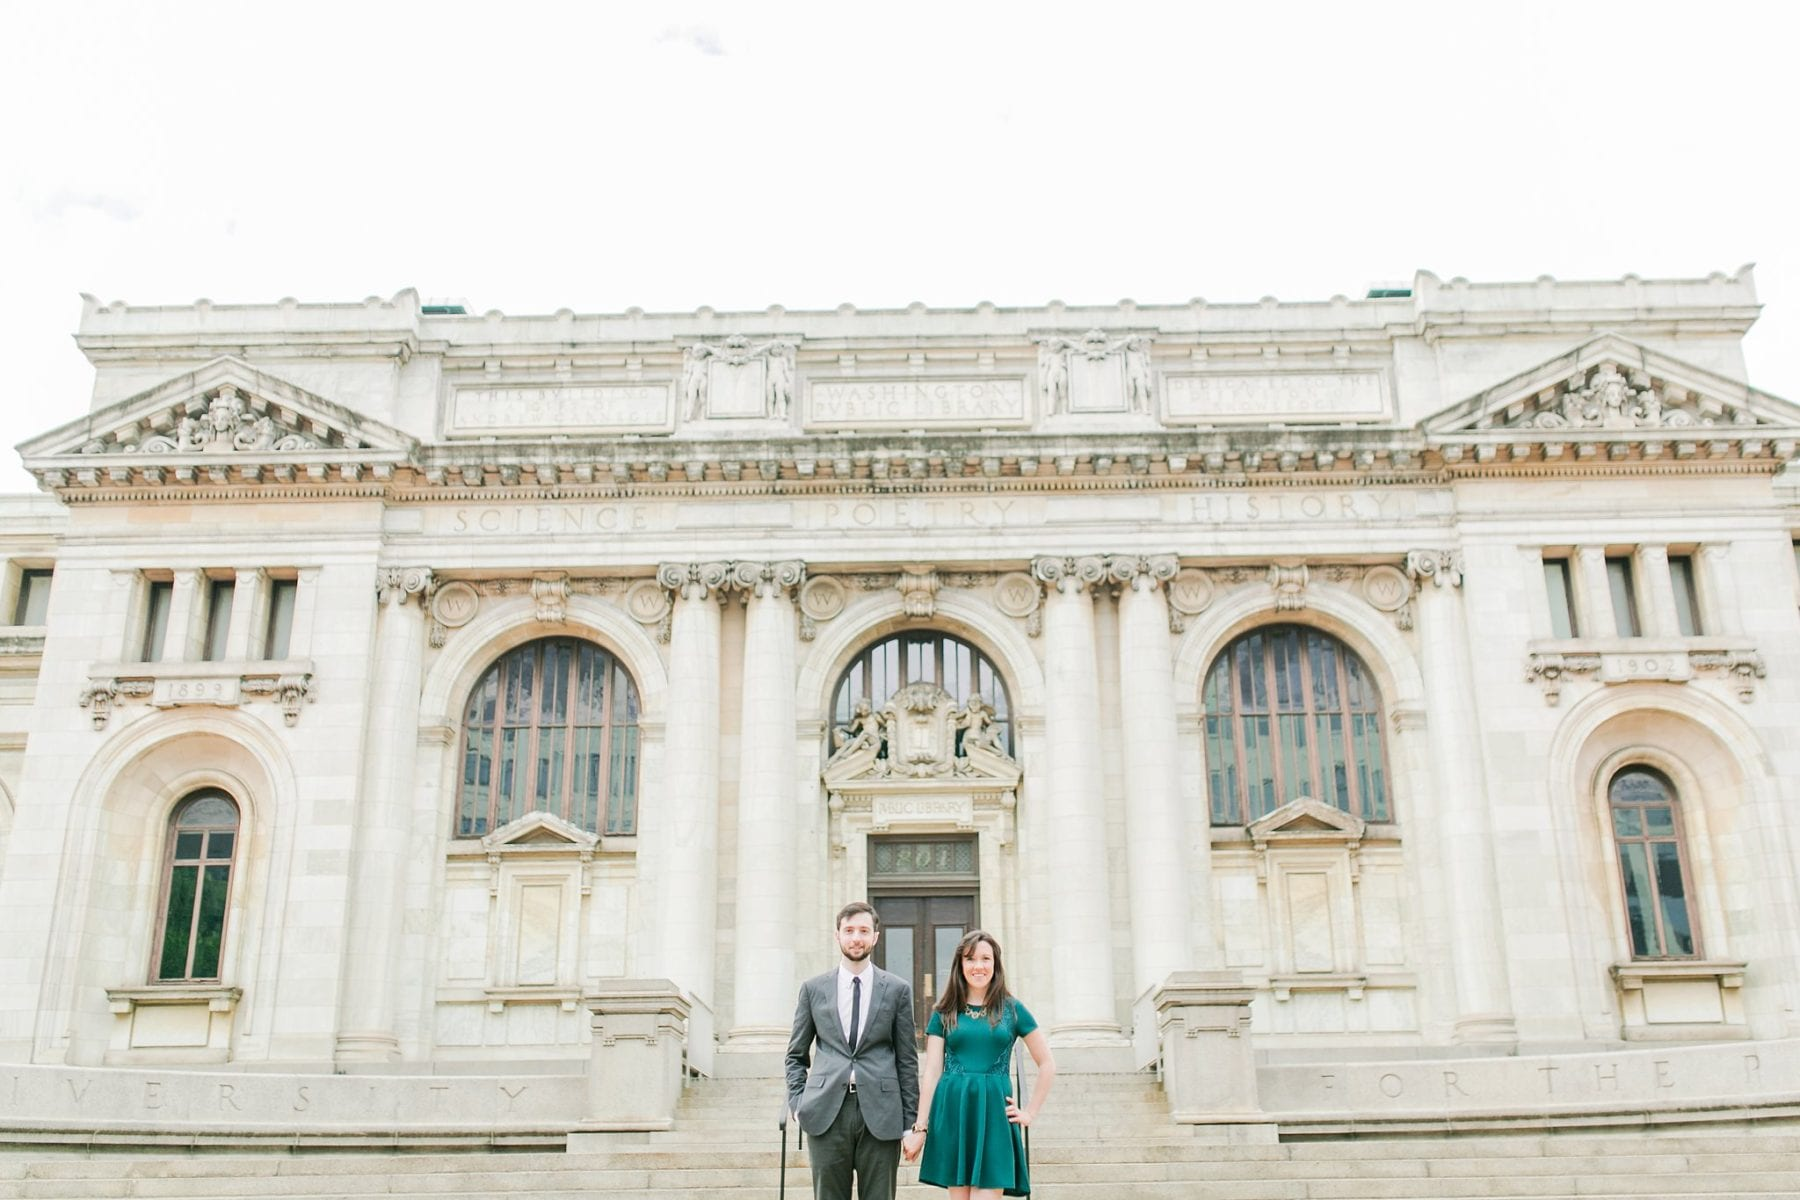 Downtown Washington DC Engagement Photos Megan Kelsey Photography Virginia Wedding Photographer Erin & Mike-0781.jpg